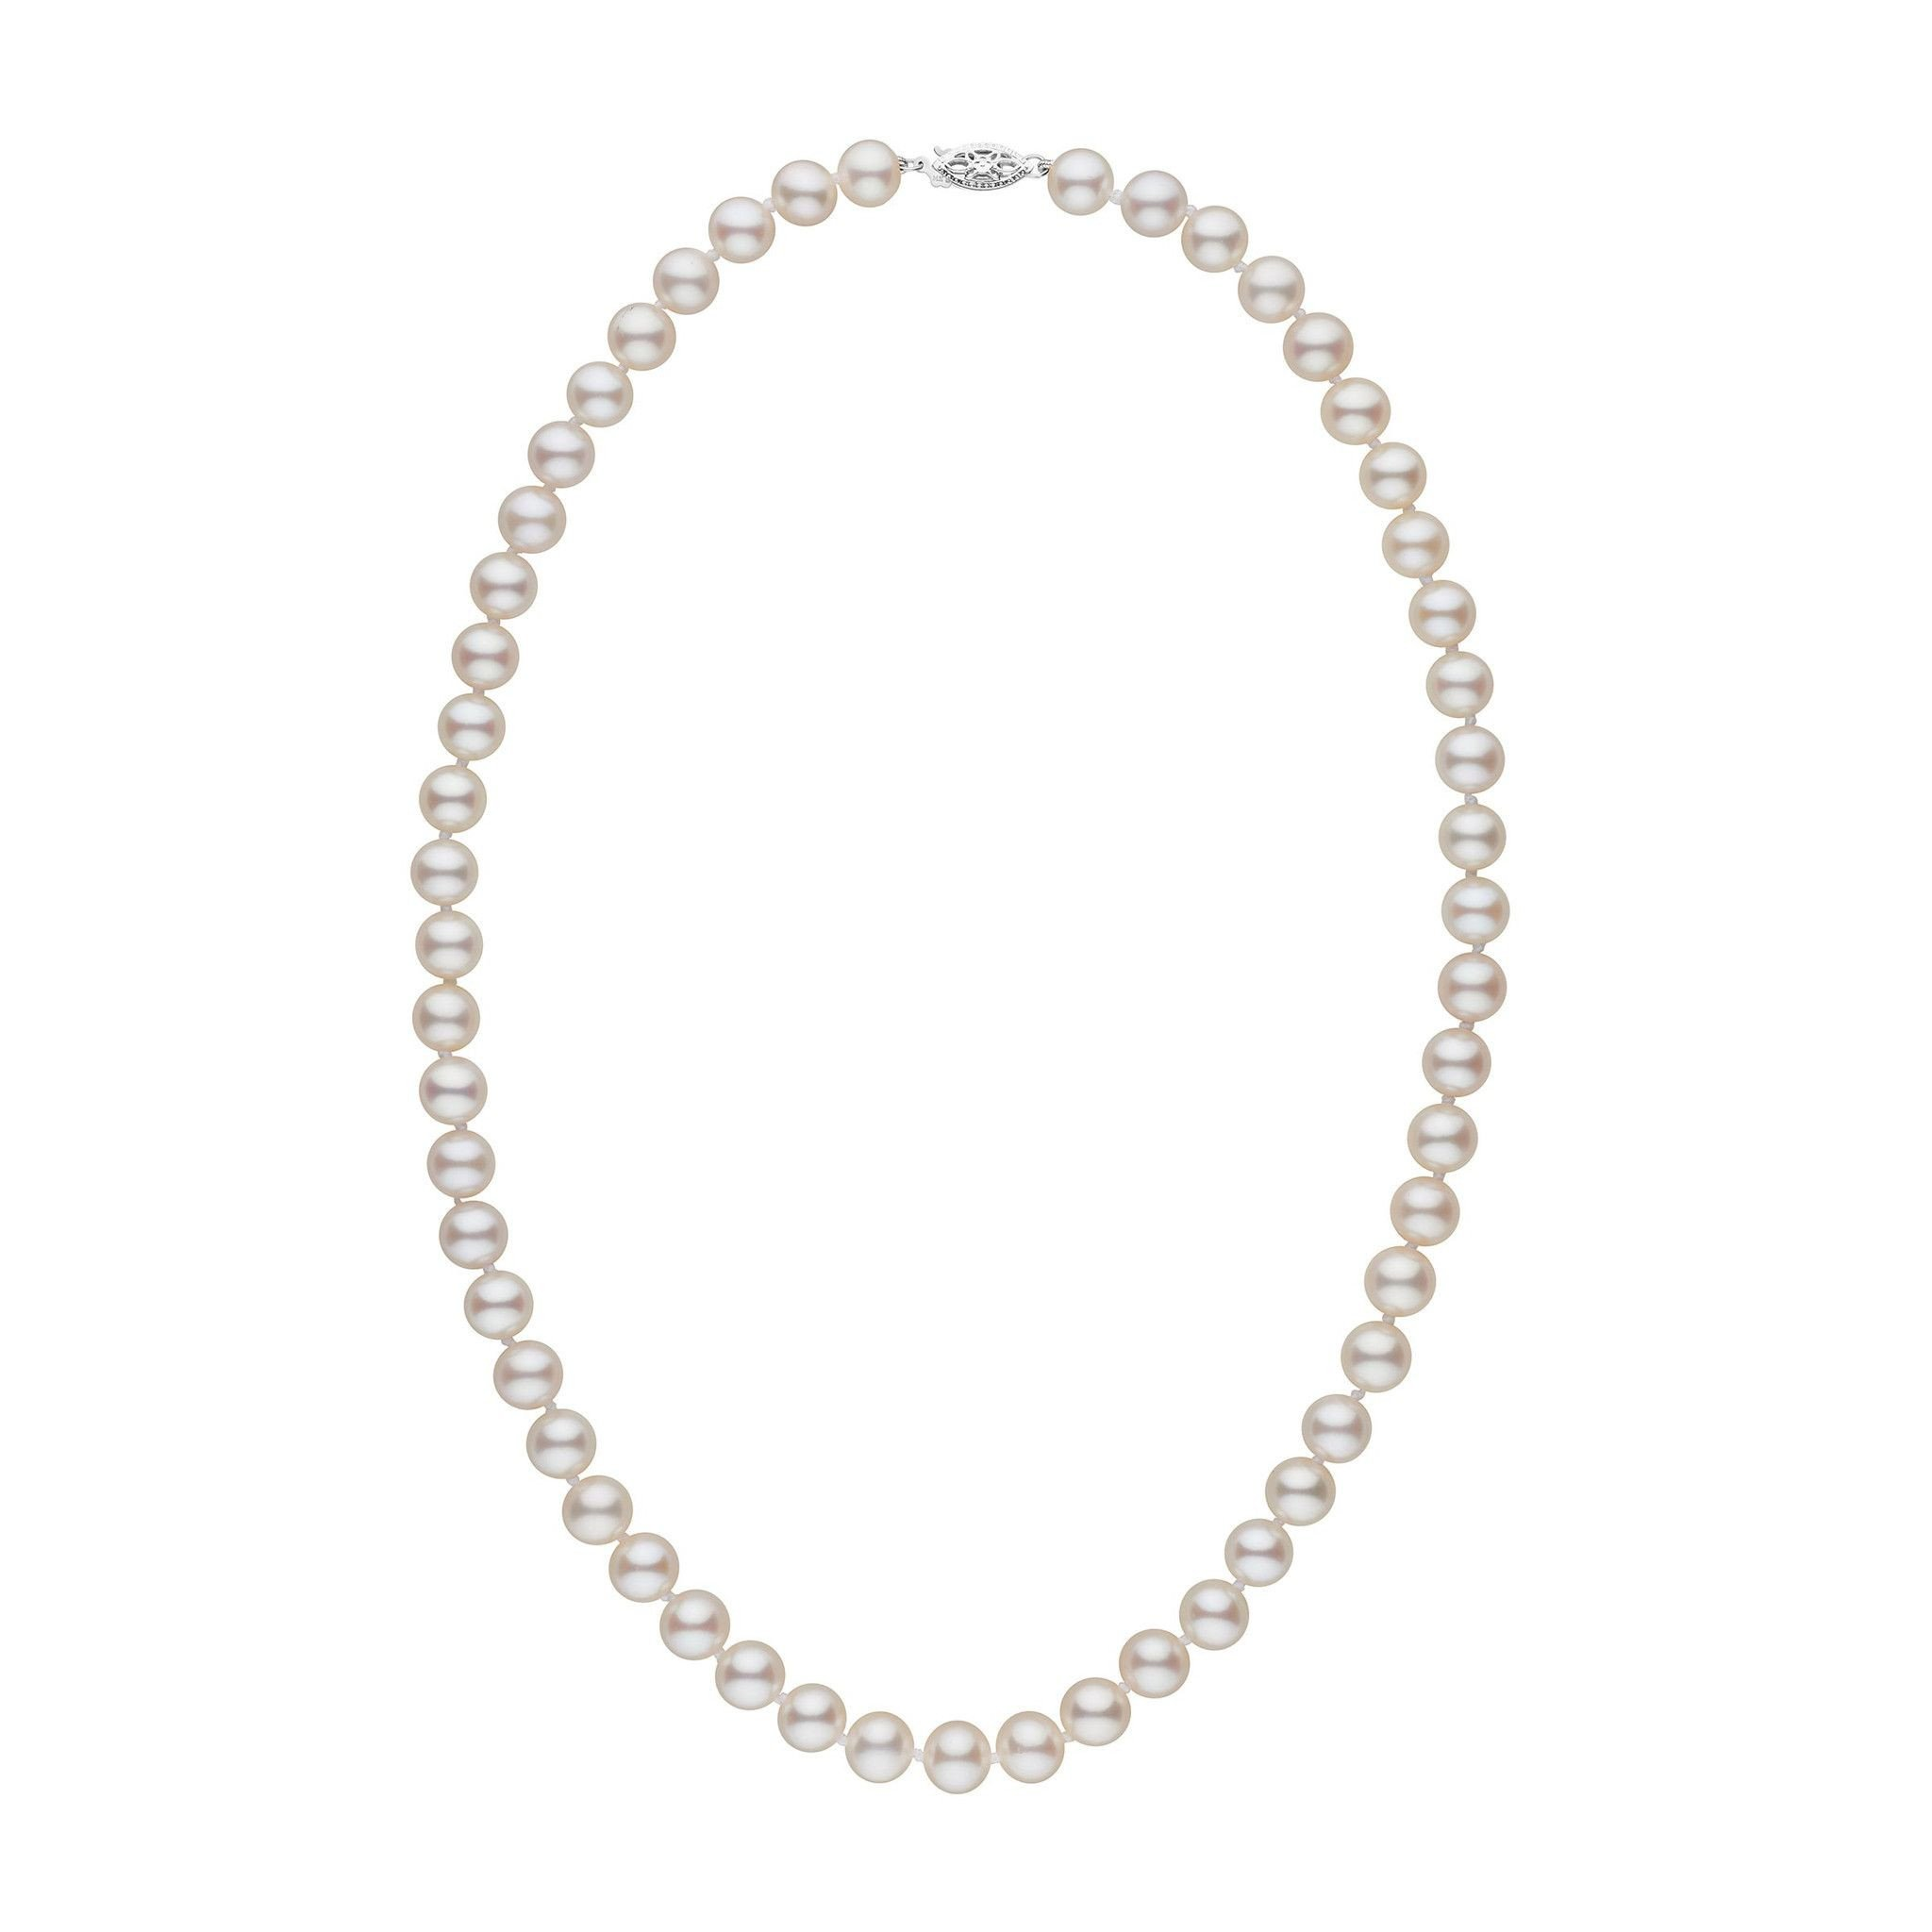 7.5-8.0 mm 18 Inch AAA White Freshwater Cultured Pearl Necklace - 14K White Gold